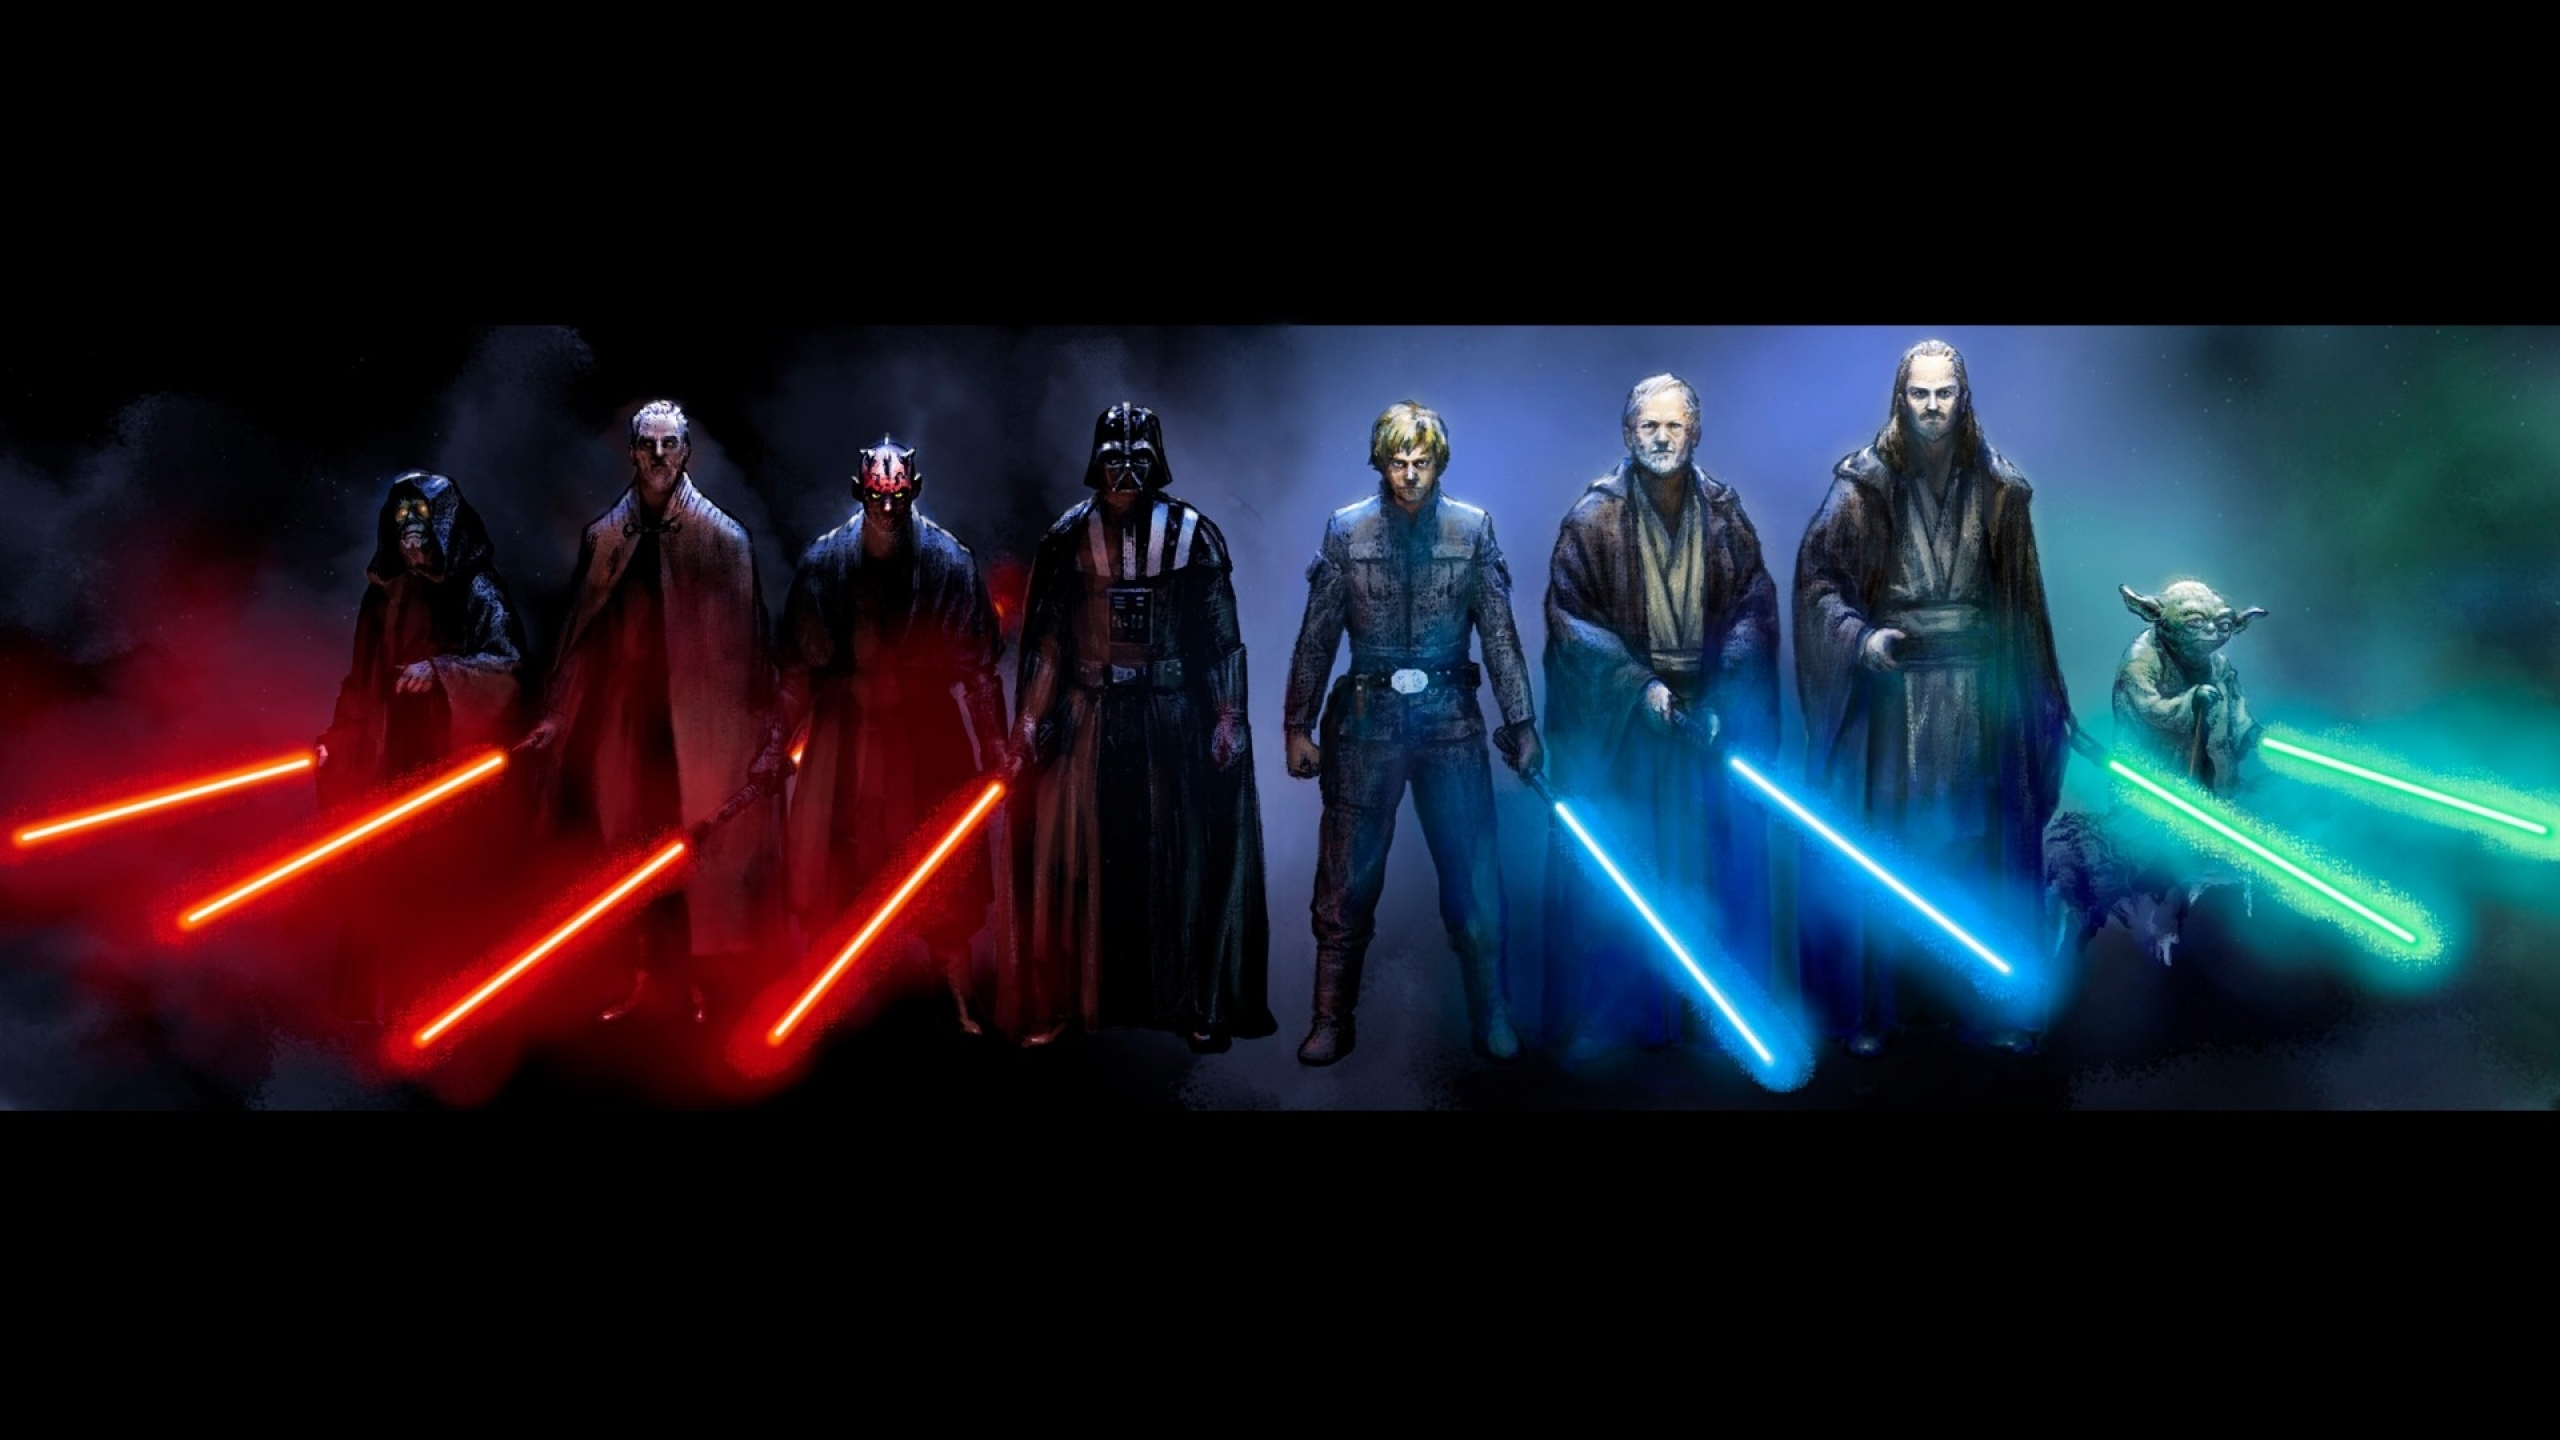 star wars darth vader sith jedi luke skywalker light sabers 1920x1080 2560x1440